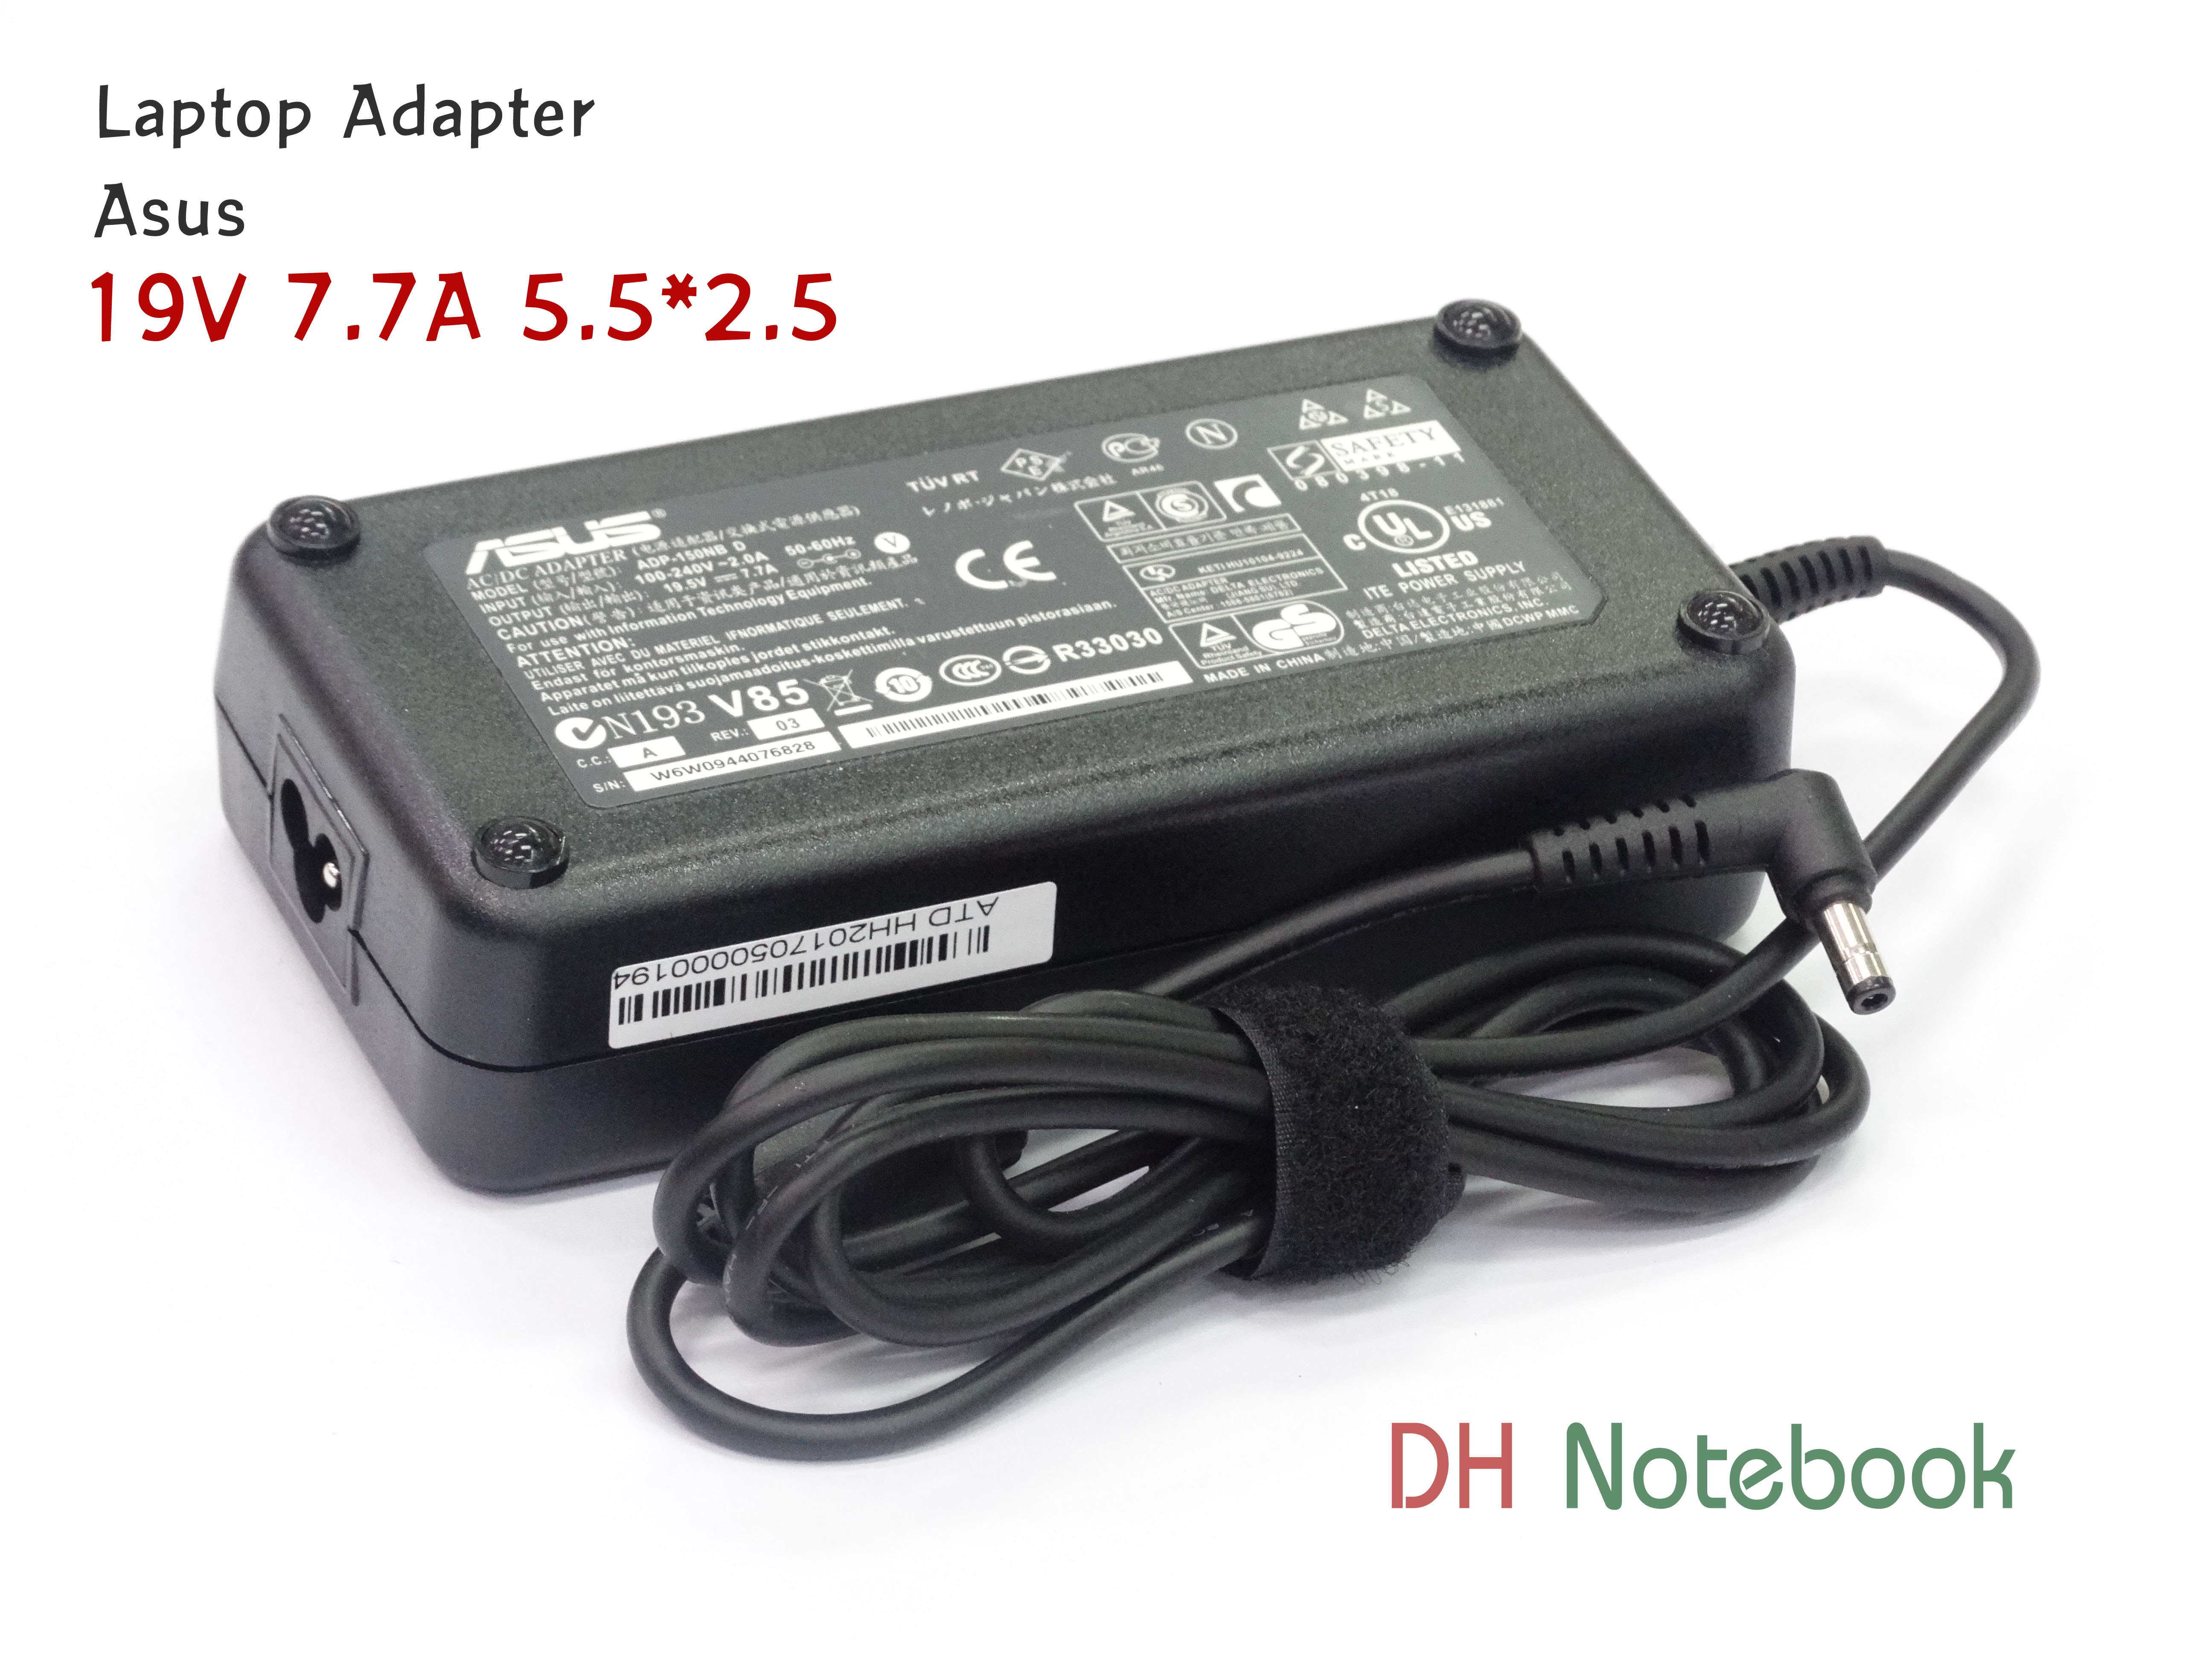 Adapter For Asus 19.5V 7.7A (5.5*2.5) ของแท้